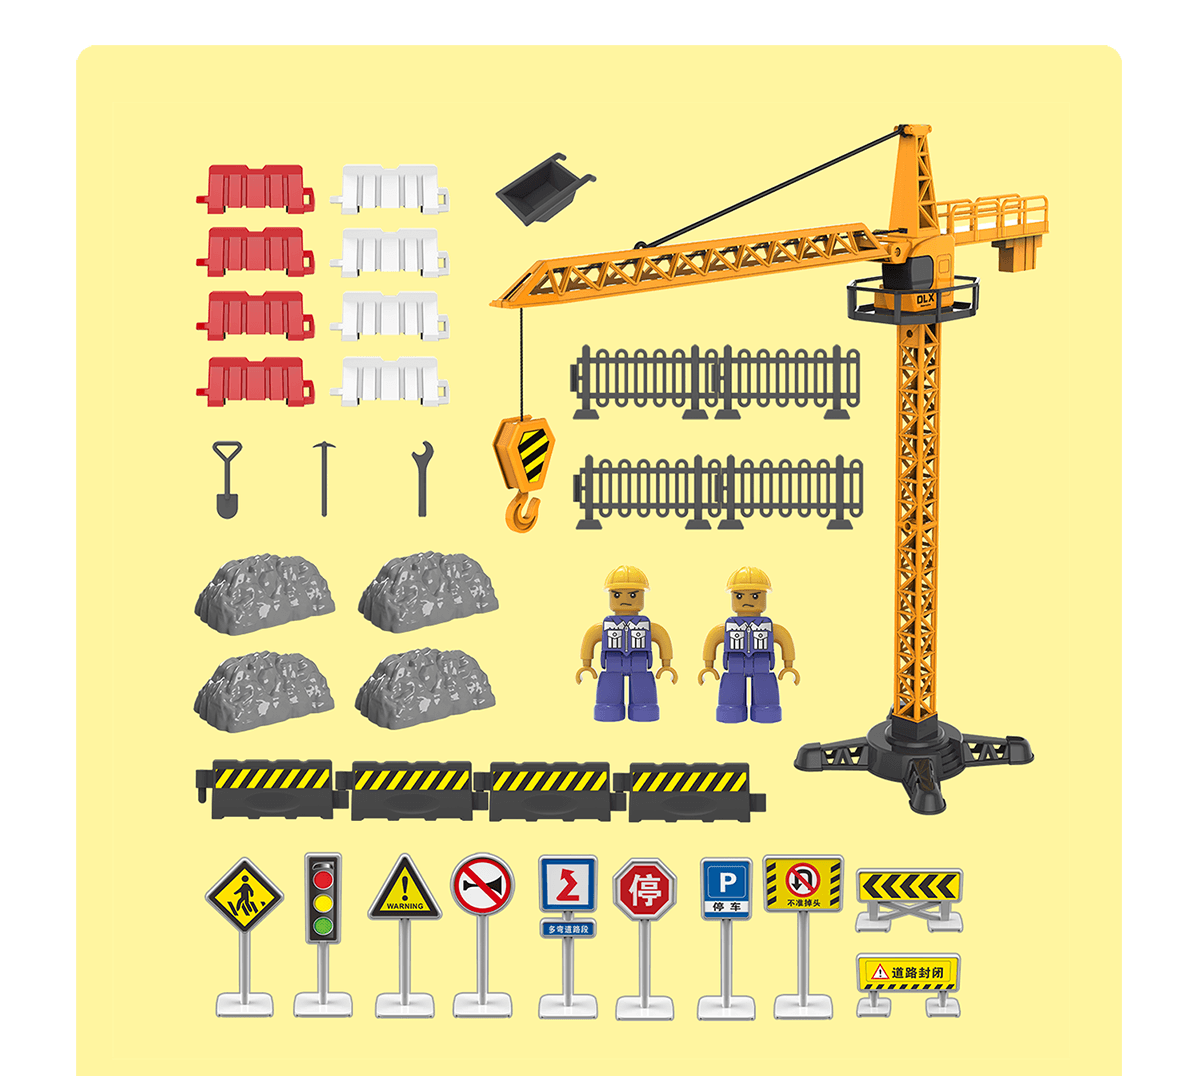 small resolution of construction tower crane site road signs traffic light accessories diecast toy city building play set engineering toys for boys